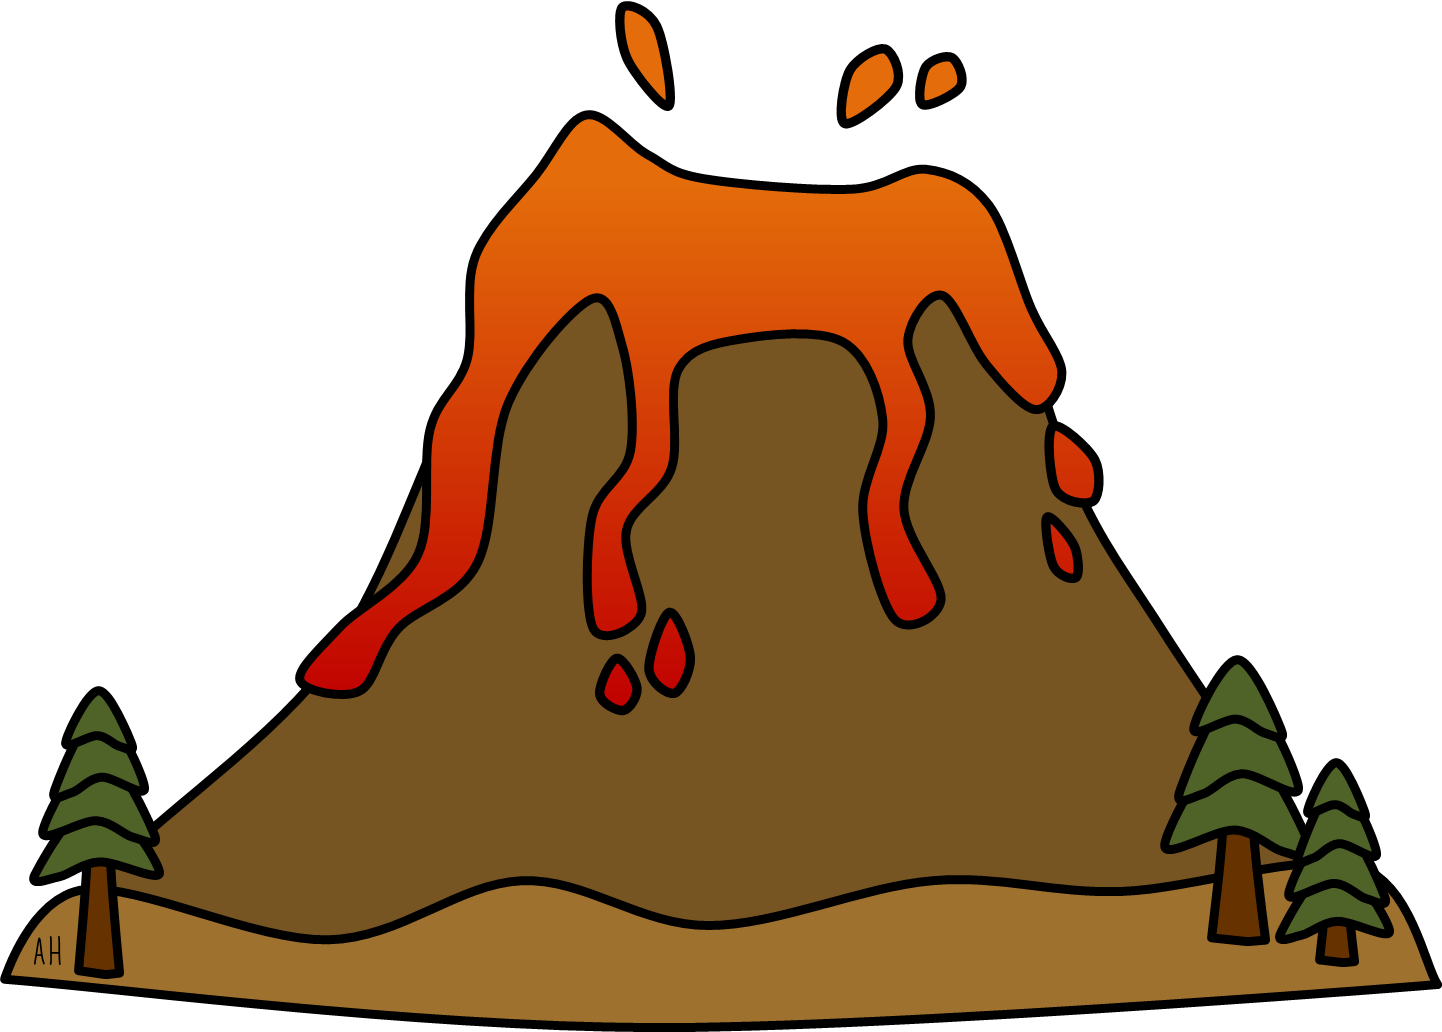 Volcano Clip Art Free | Clipart Panda - Free Clipart Images